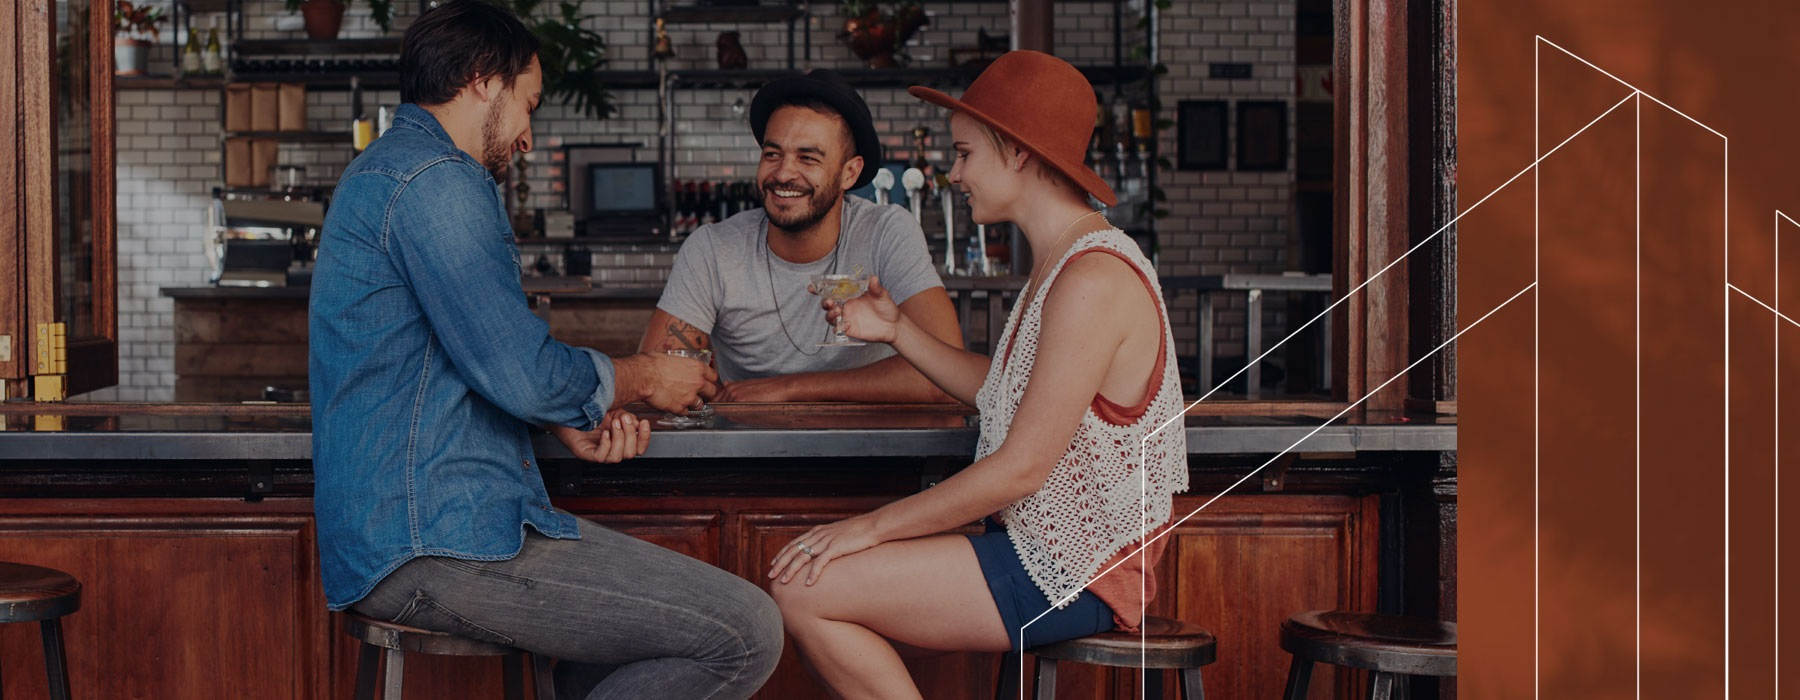 lifestyle image of a few people chatting in a bar